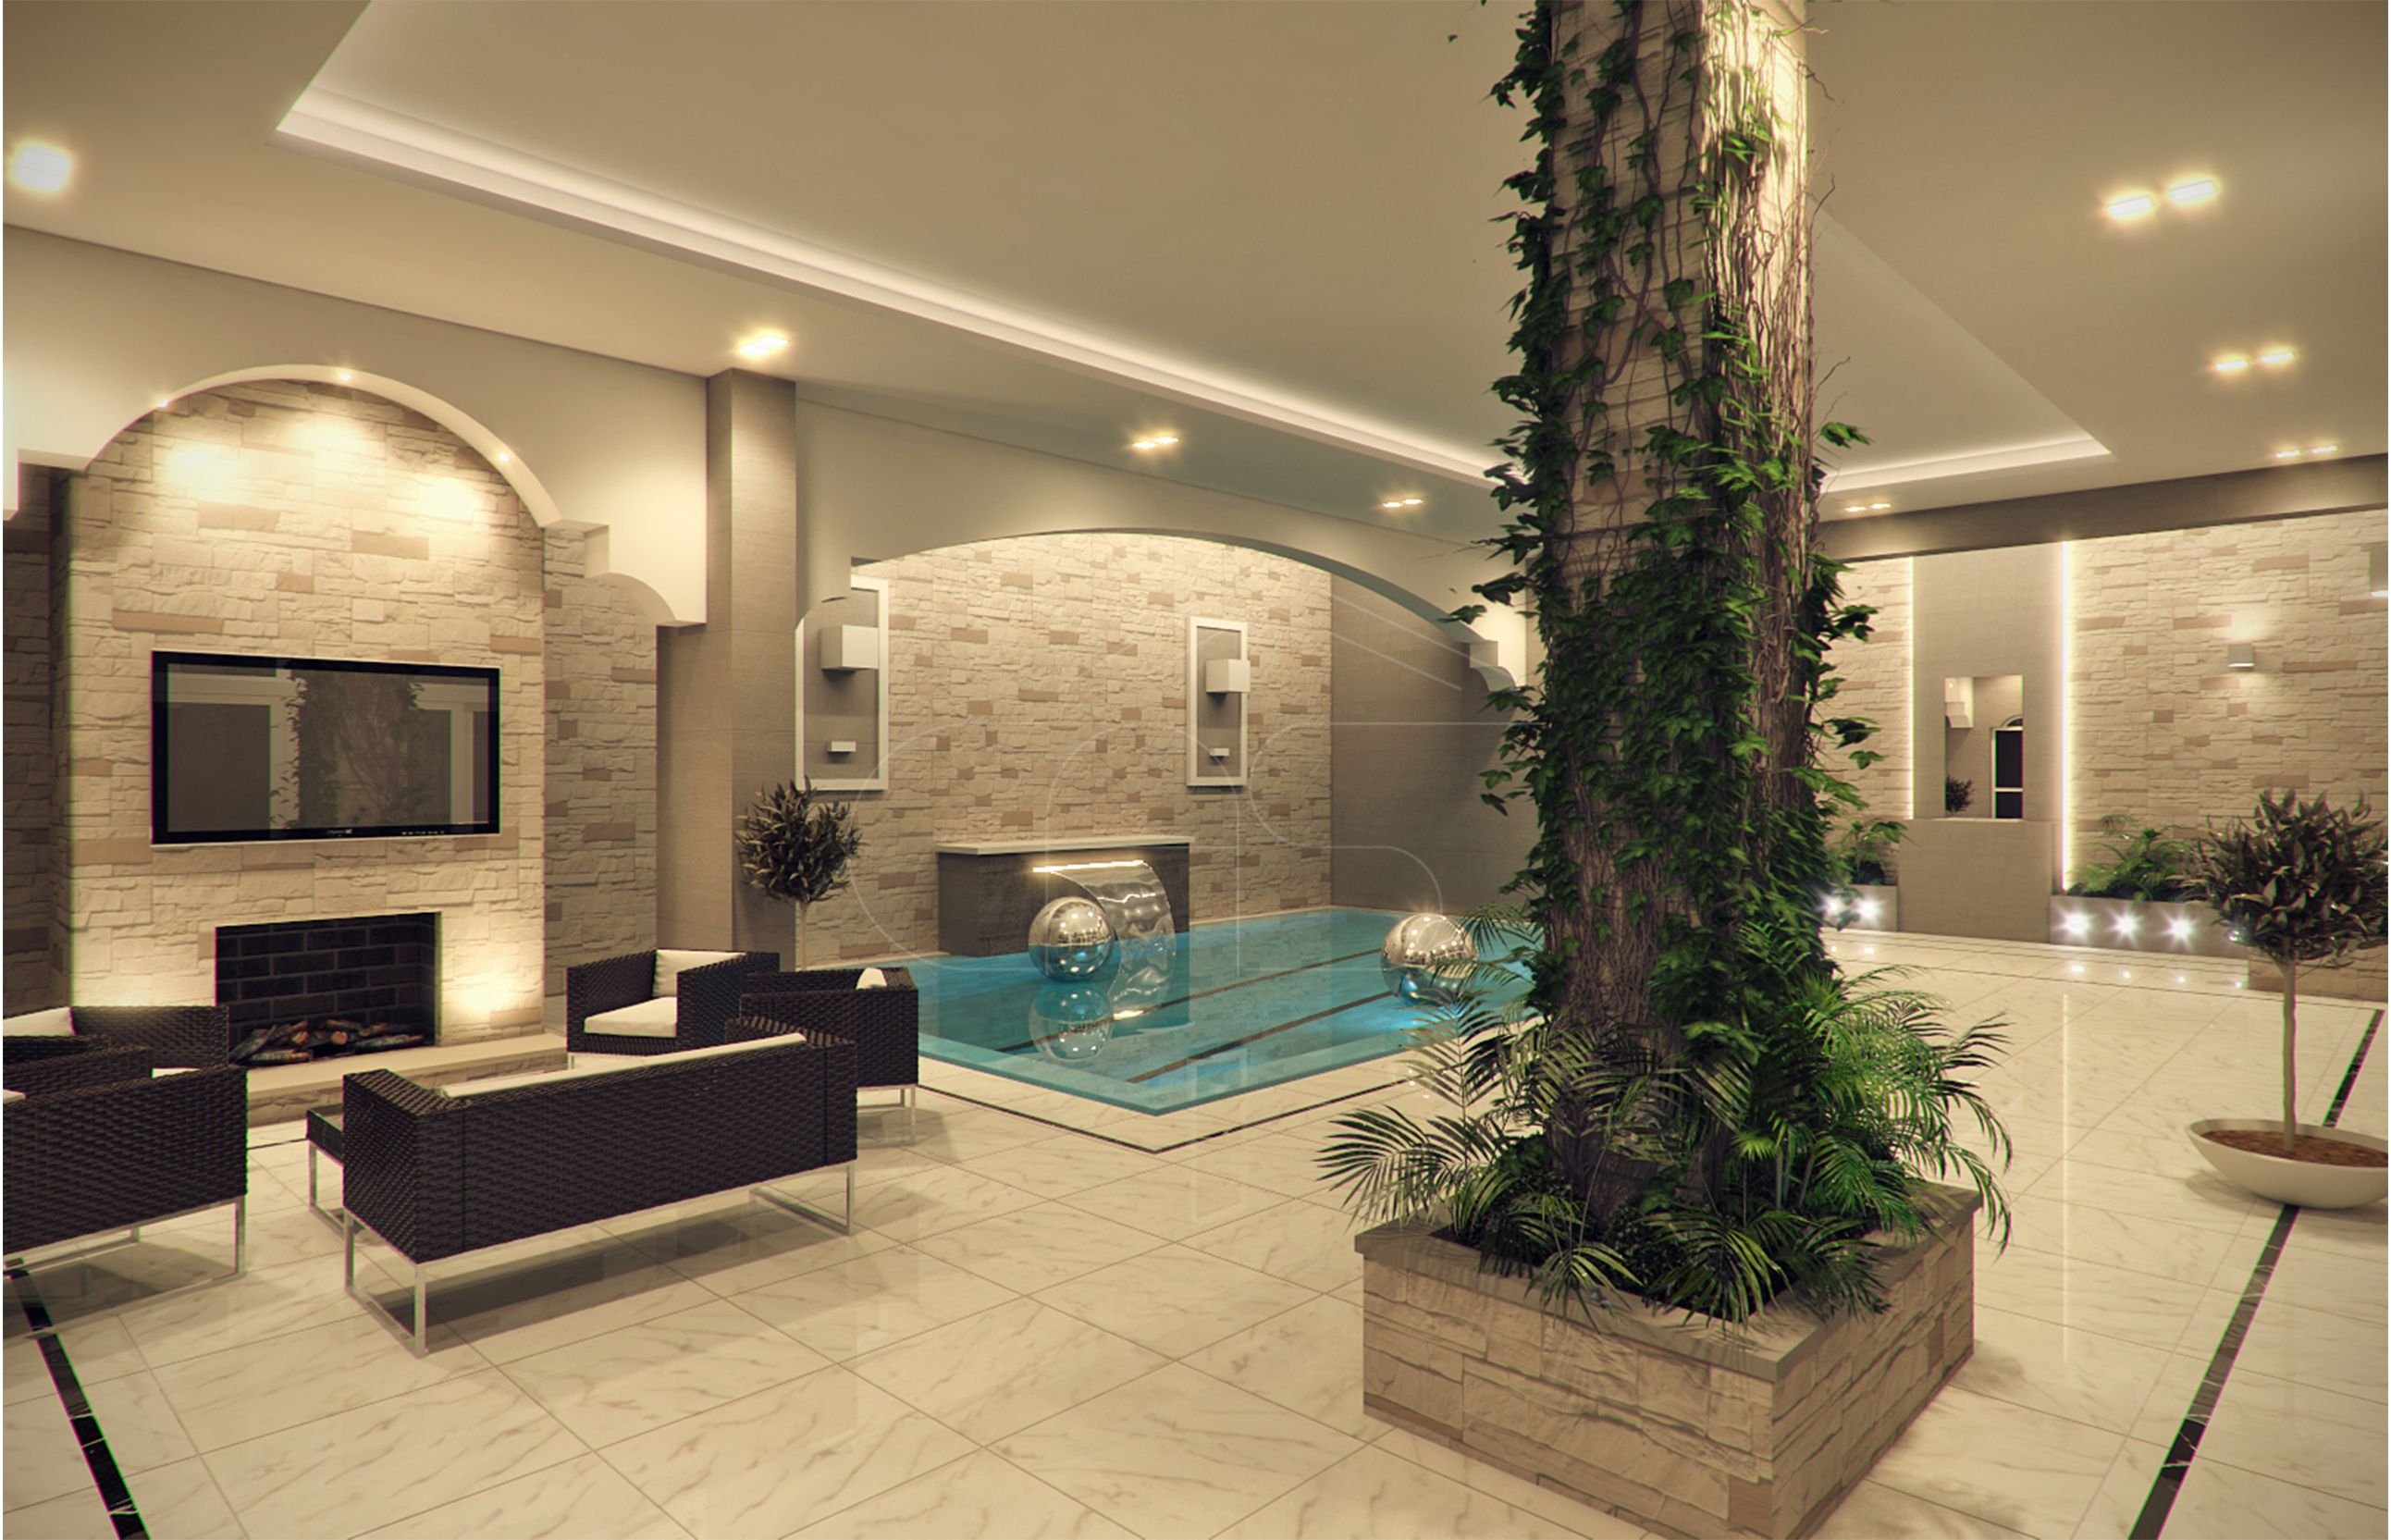 Modern classic villa interior design modern classic for Villa rose riyadh interior design